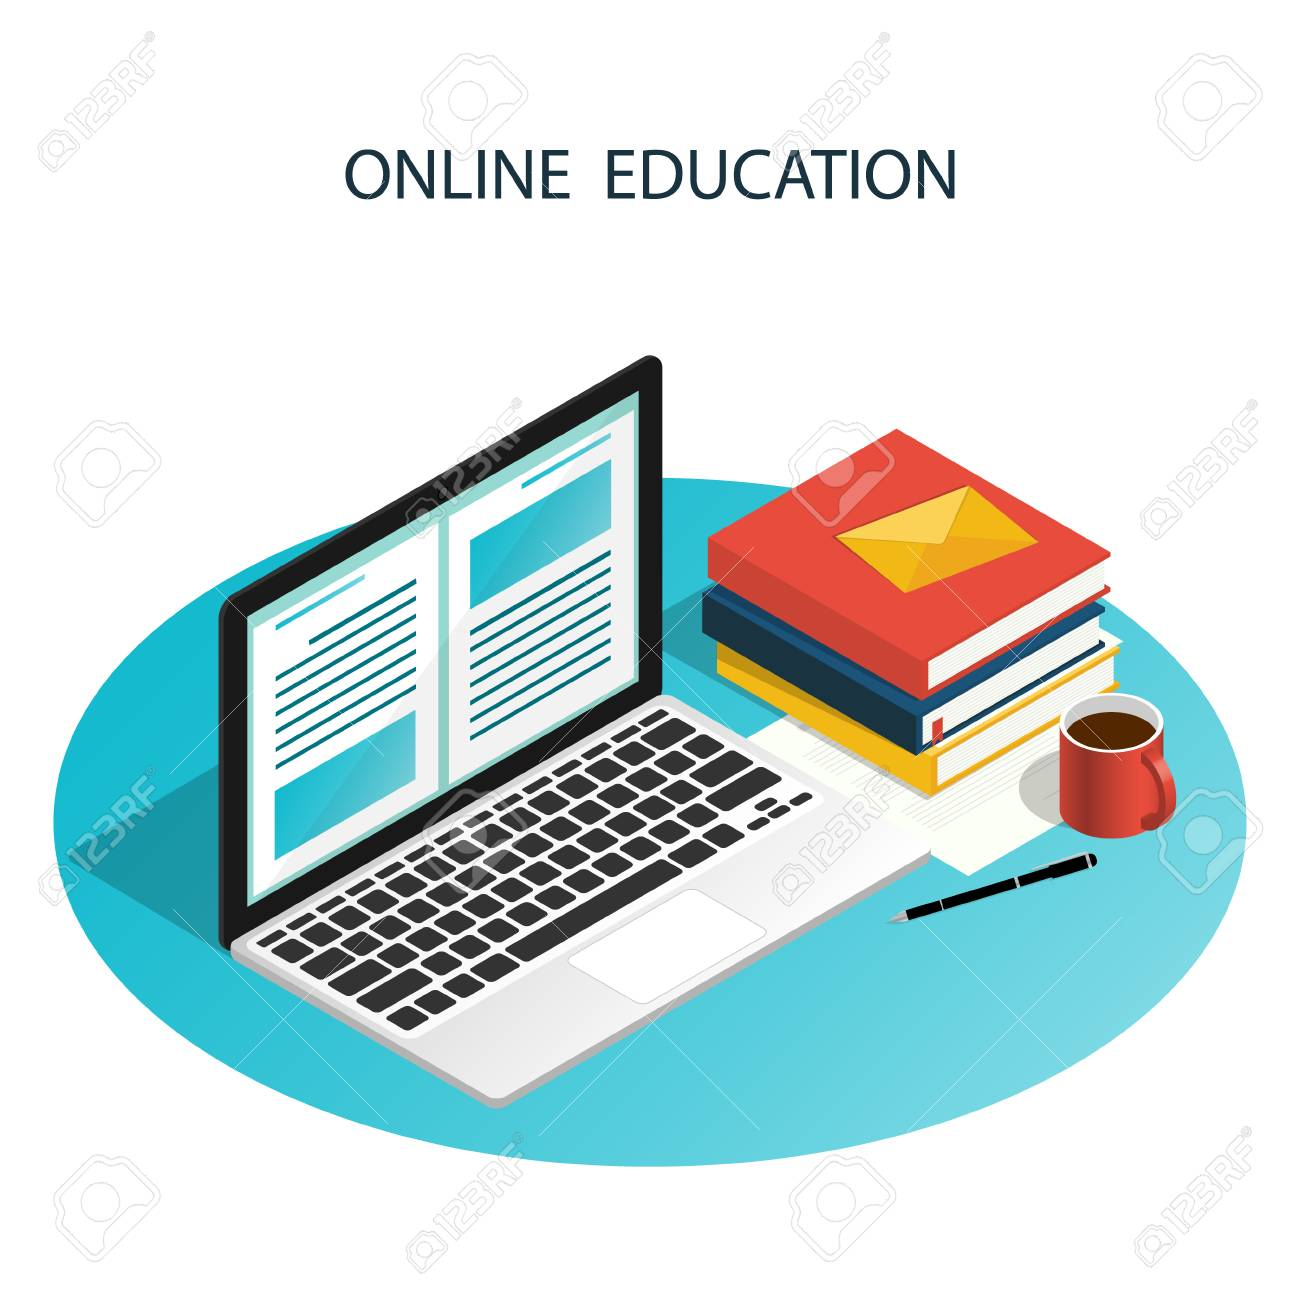 Free Computer Training Clipart, Download Free Clip Art, Free Clip Art on  Clipart Library